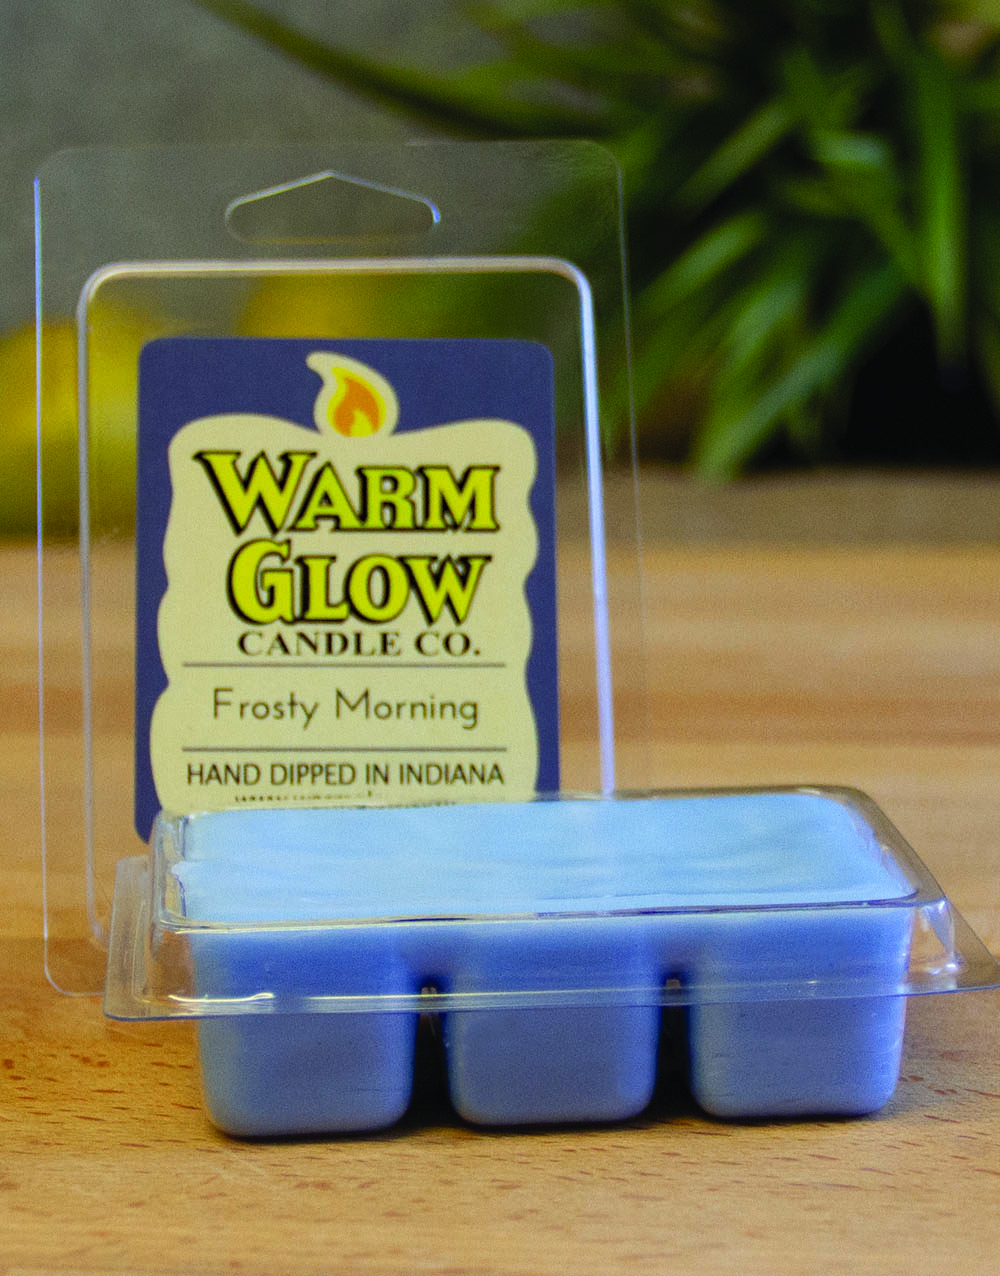 Frosty Morning wax melts